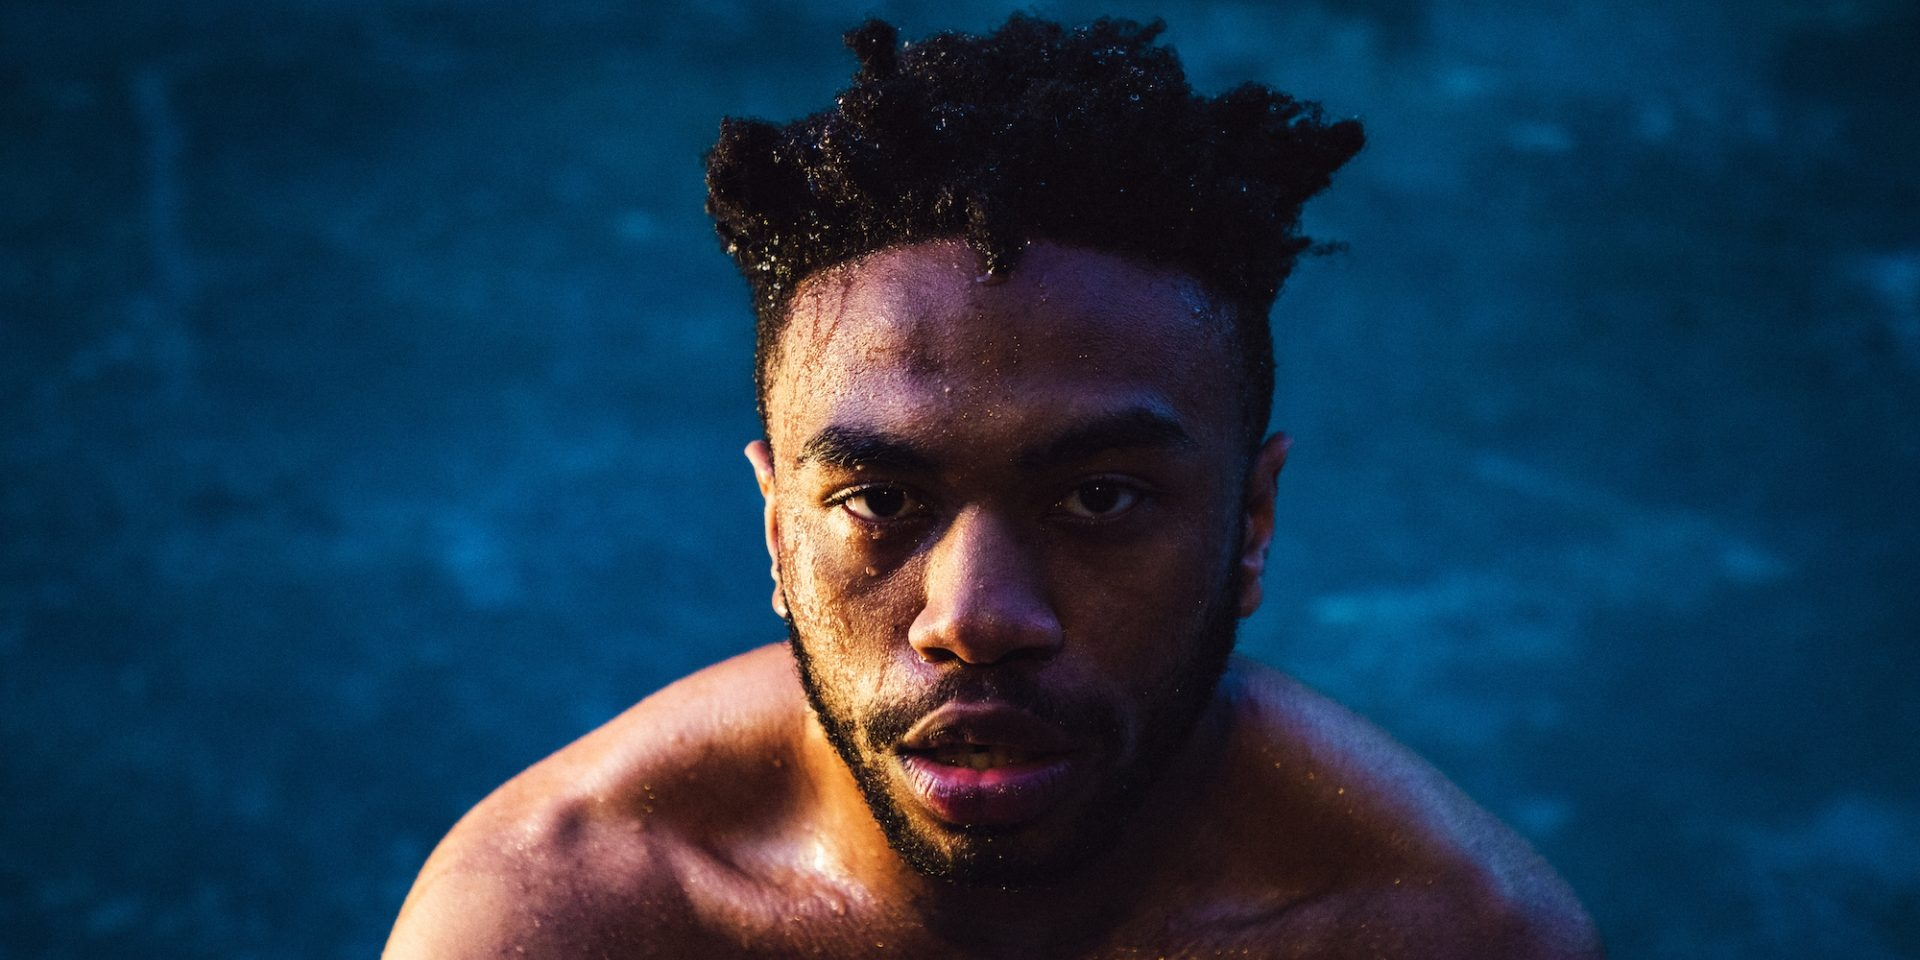 BROCKHAMPTON's Kevin Abstract releases solo album ARIZONA BABY – listen